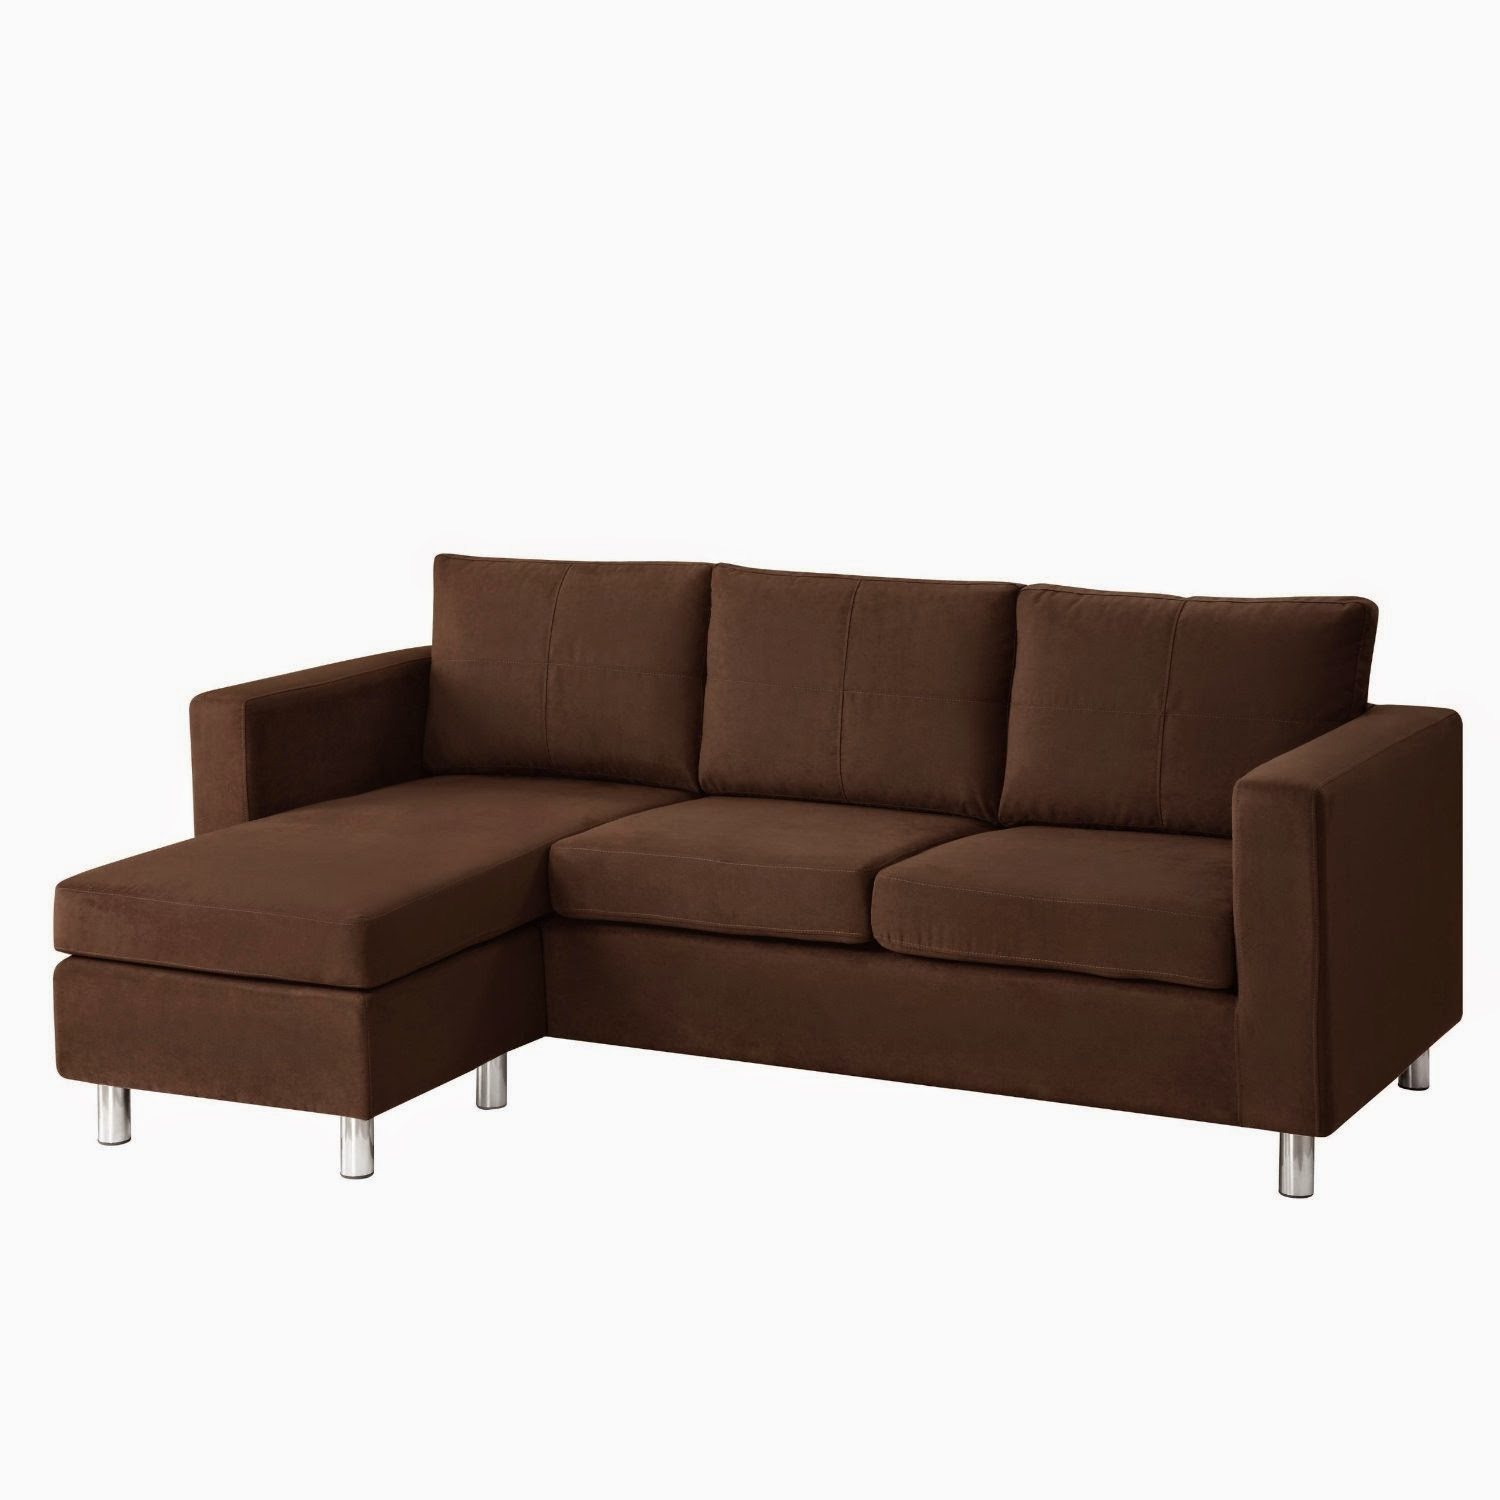 Cheap sofa cheap sectional sofa for Cheap sectional couch